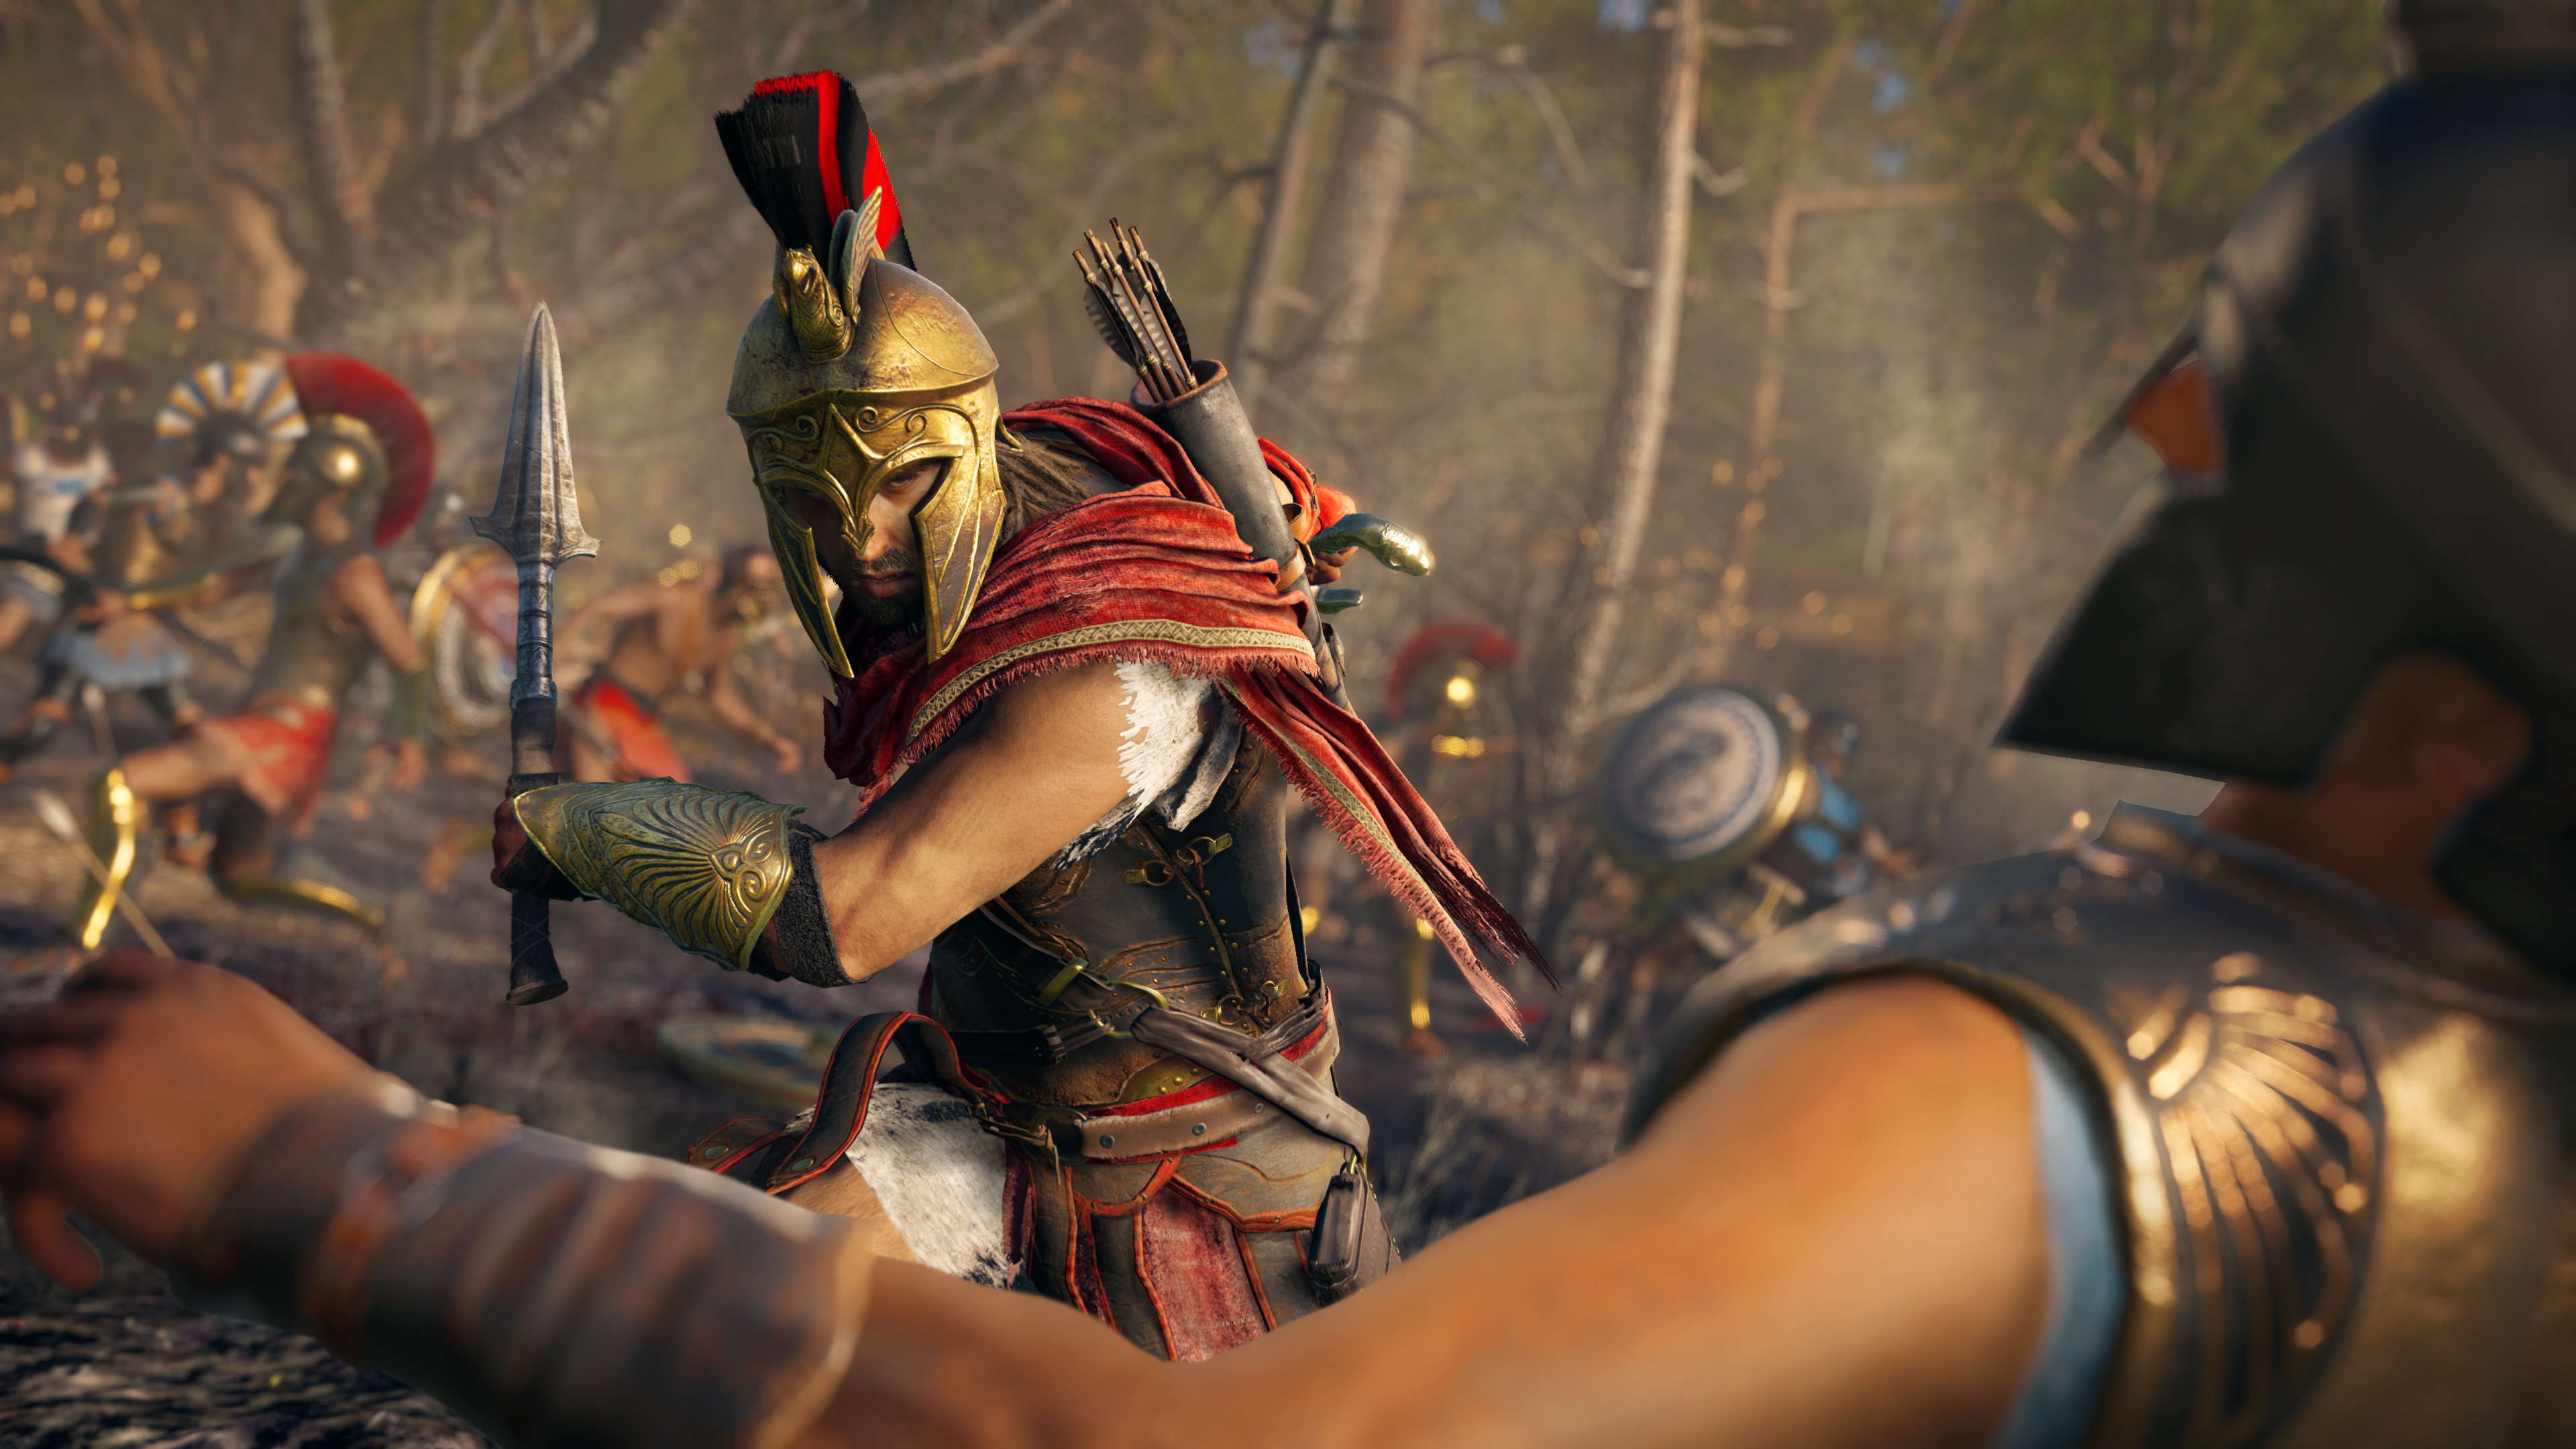 Assassin S Creed Odyssey Patch 1 5 1 Being Rolled Out For Ps4 Xo